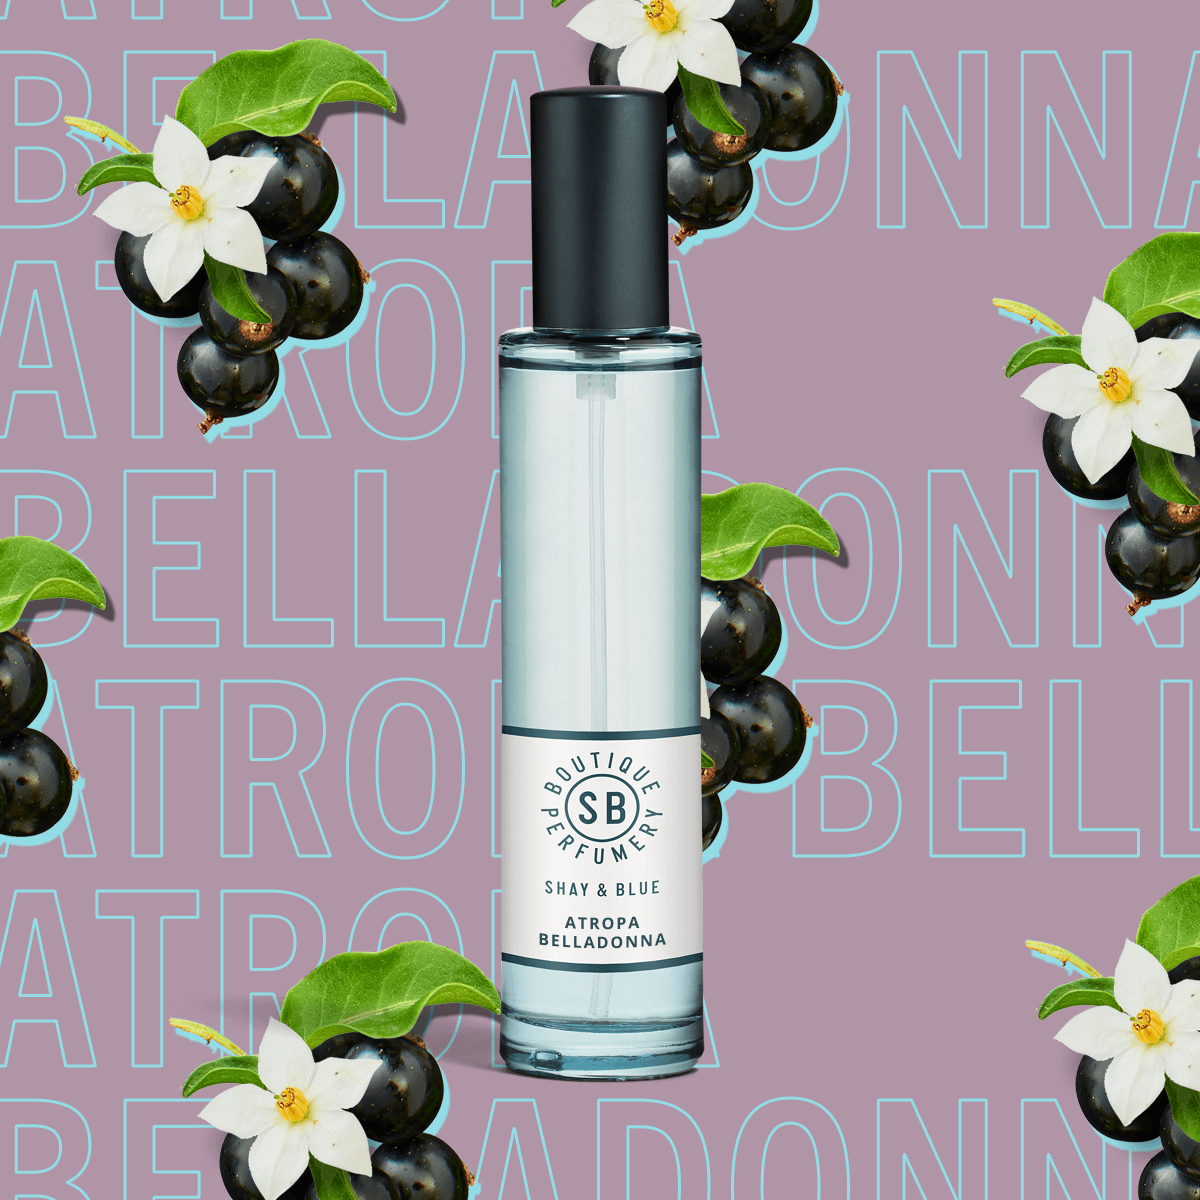 Atropa Belladonna Fragrance 30ml | Cassis berries and jasmine dance with layers of depth from patchouli and vanilla. | Clean All Gender Fragrance | Shay & Blue